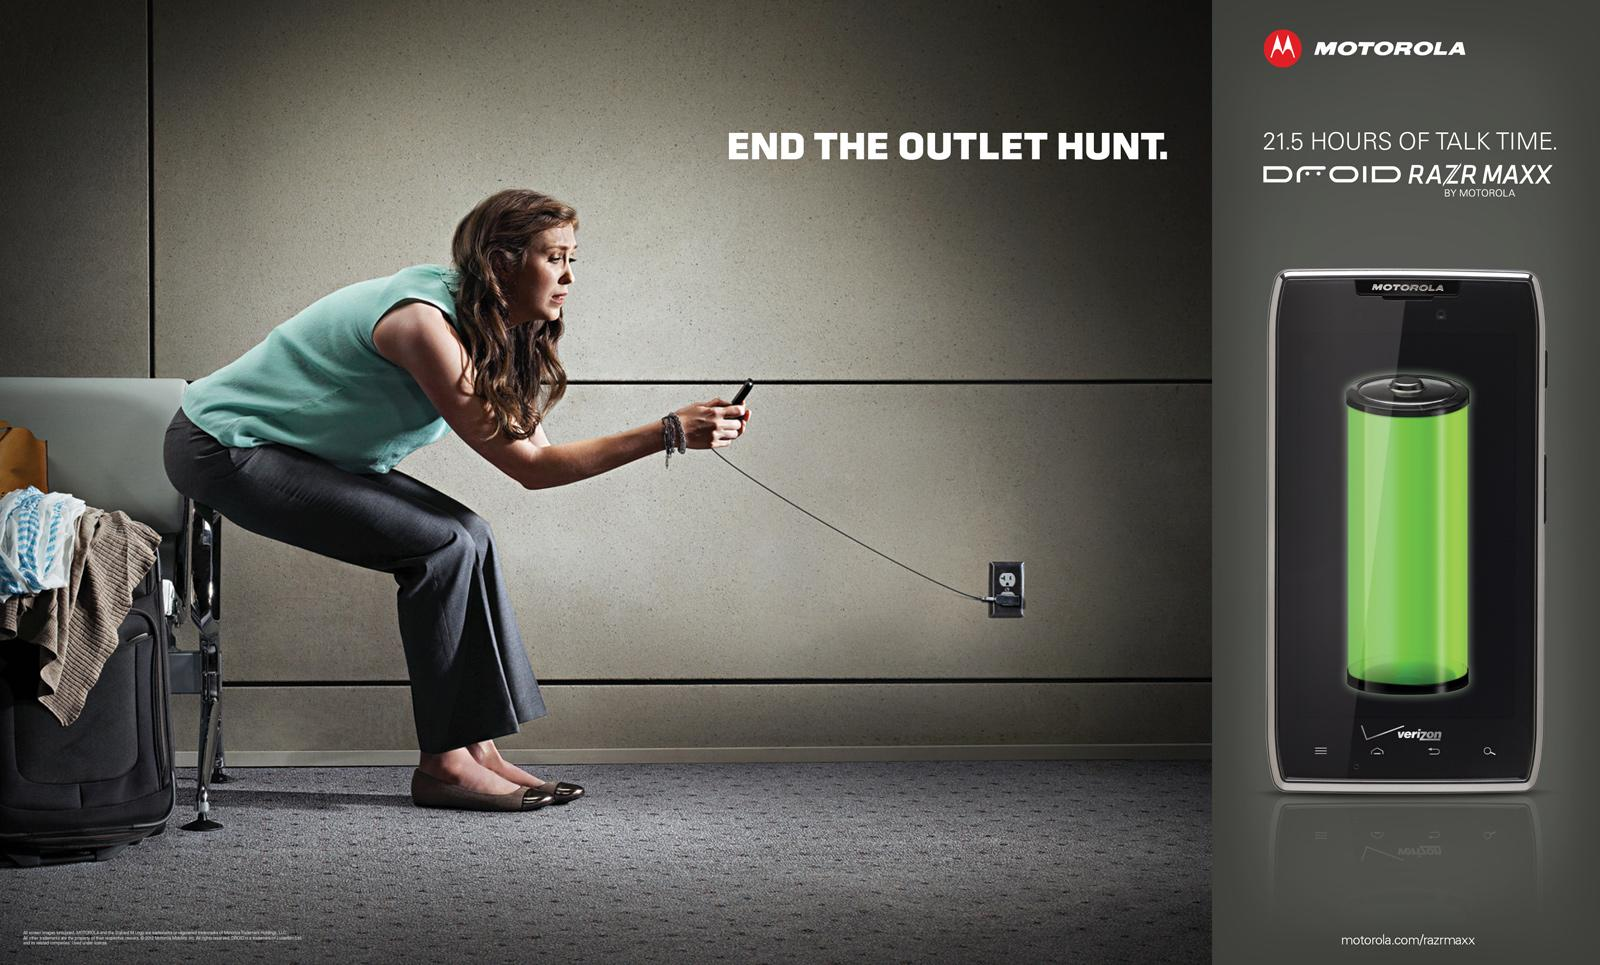 Motorola Outdoor Ad -  End The Outlet Hunt, 3